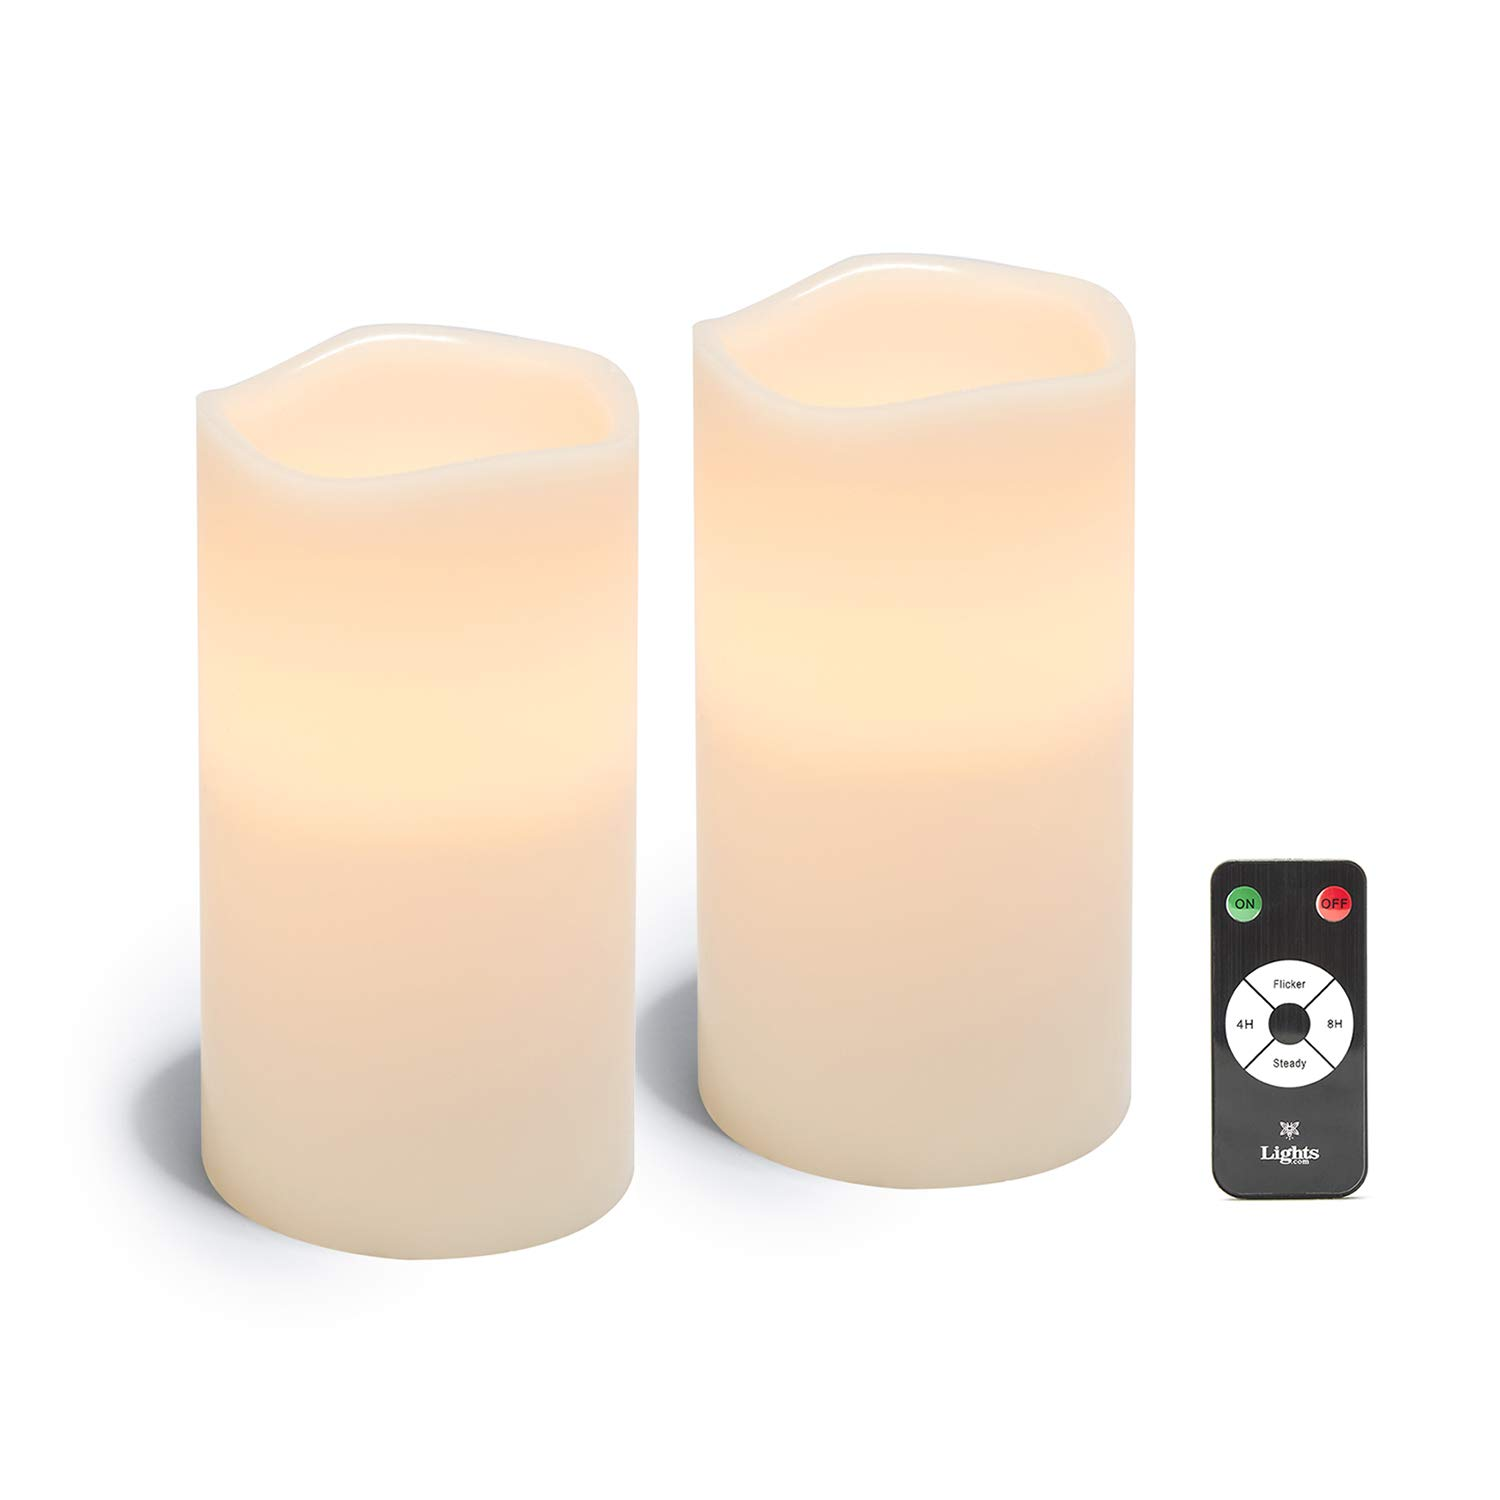 Large Flameless Pillar Candles - Set of 2 White Wax Candle Set, 4 x 8 Inches, Melted Edge, Warm White LED Light - Batteries & Remote Included